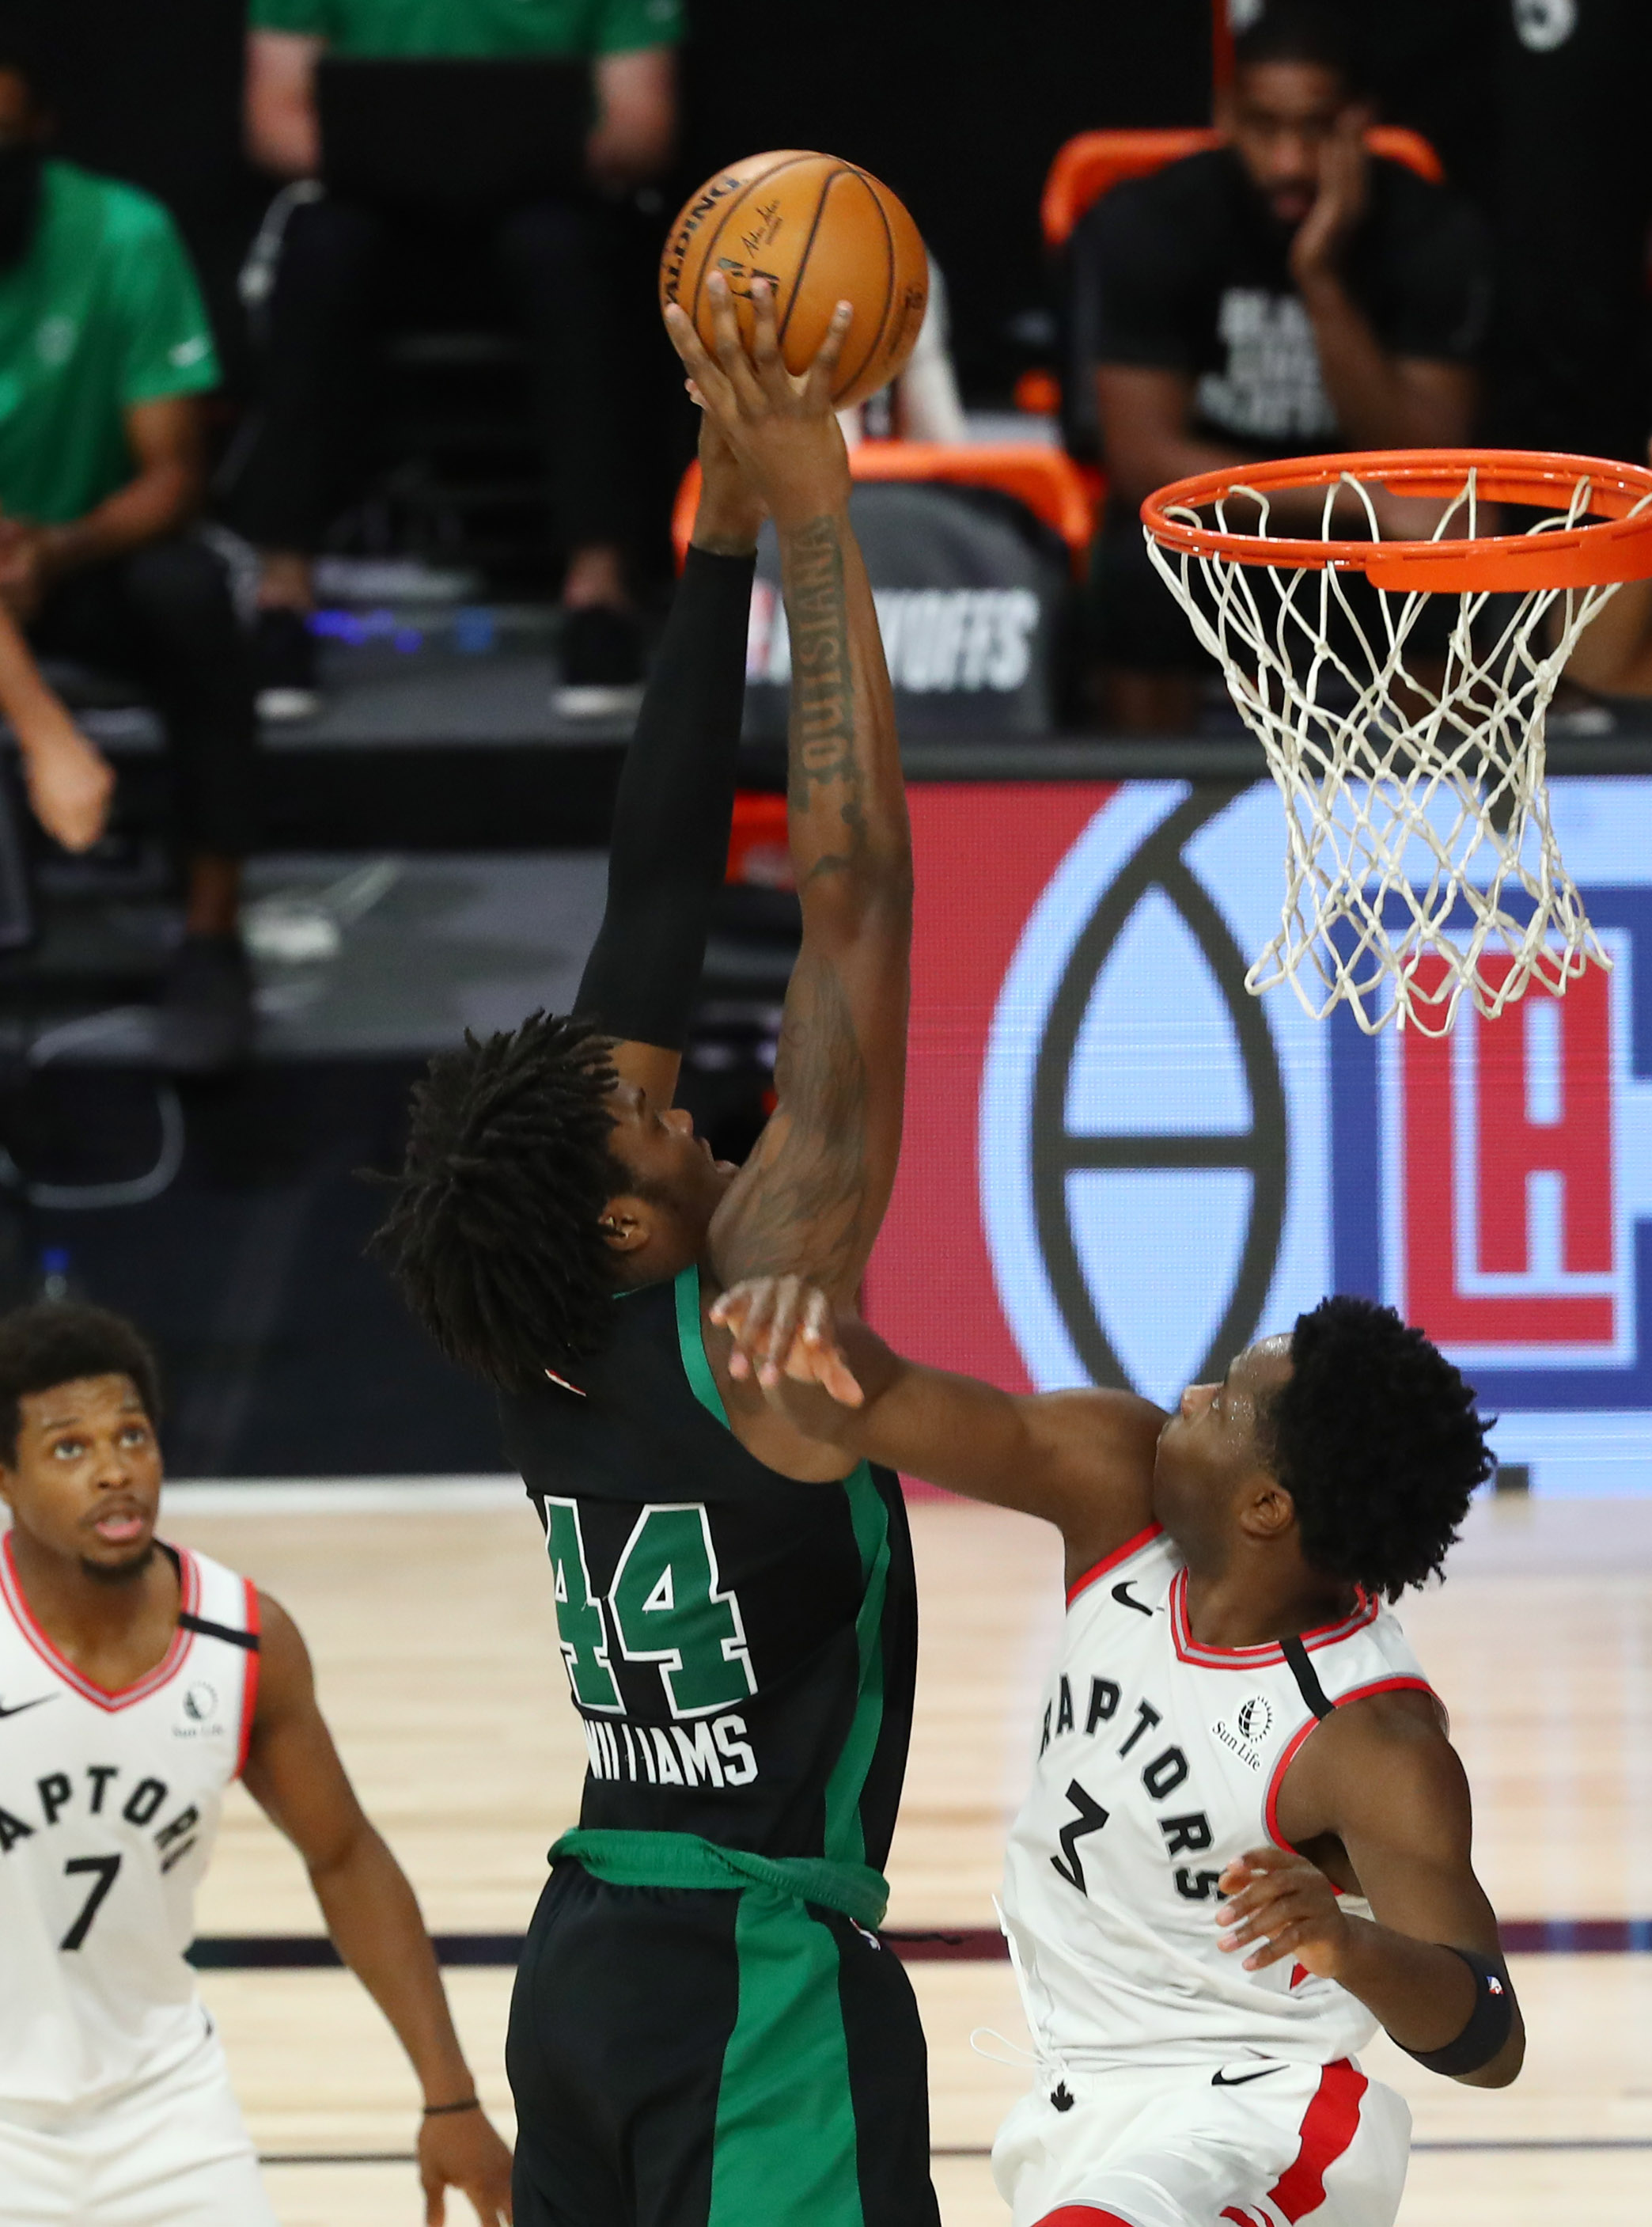 Your Morning Dump... Where Rob Williams has made his presence known against the Raptors